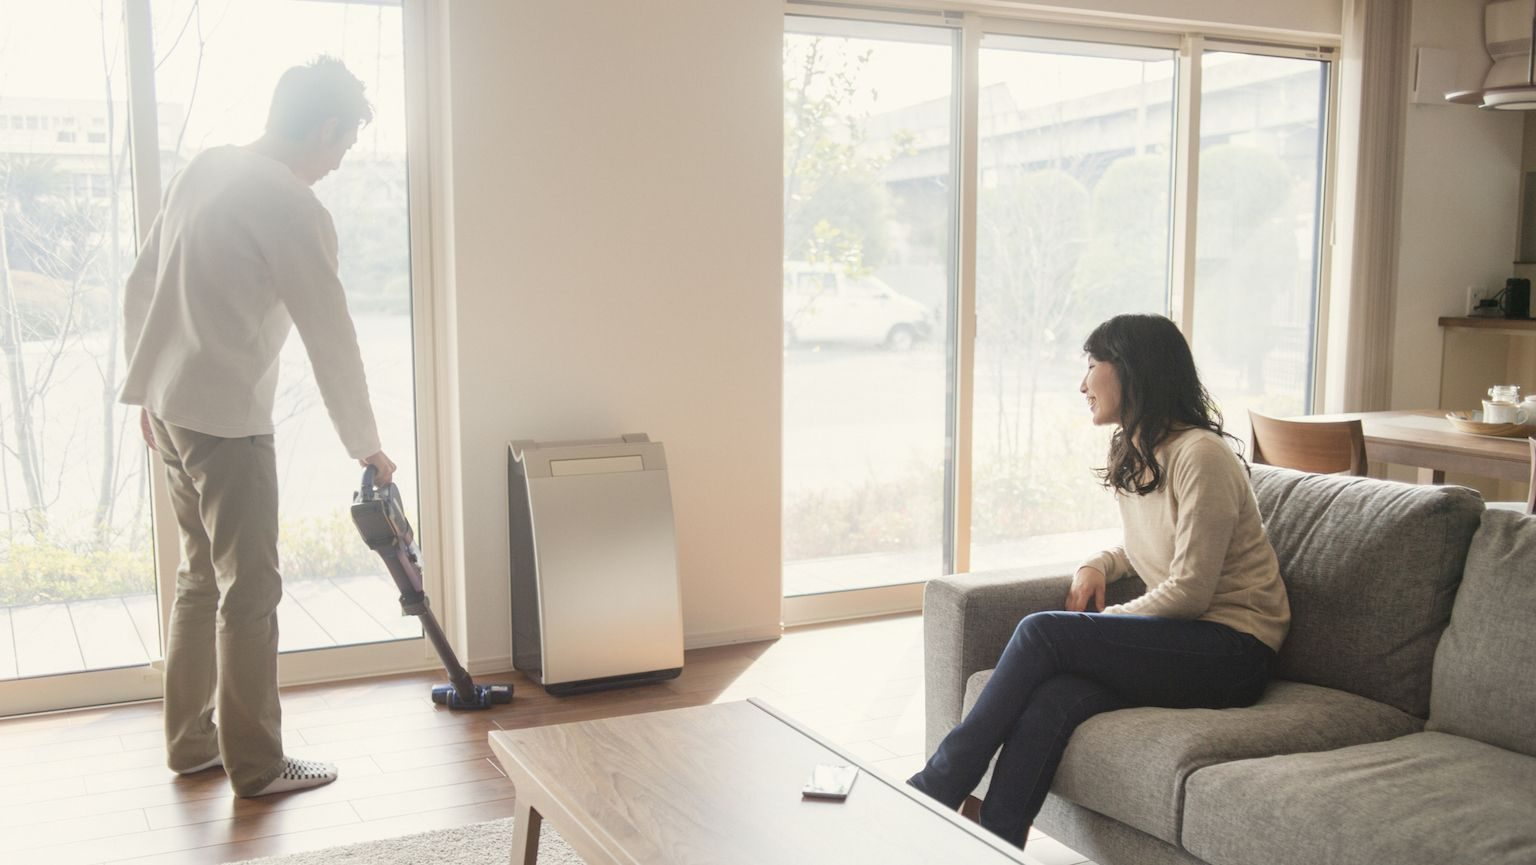 Man vacuuming in his living room while a woman watches from the couch